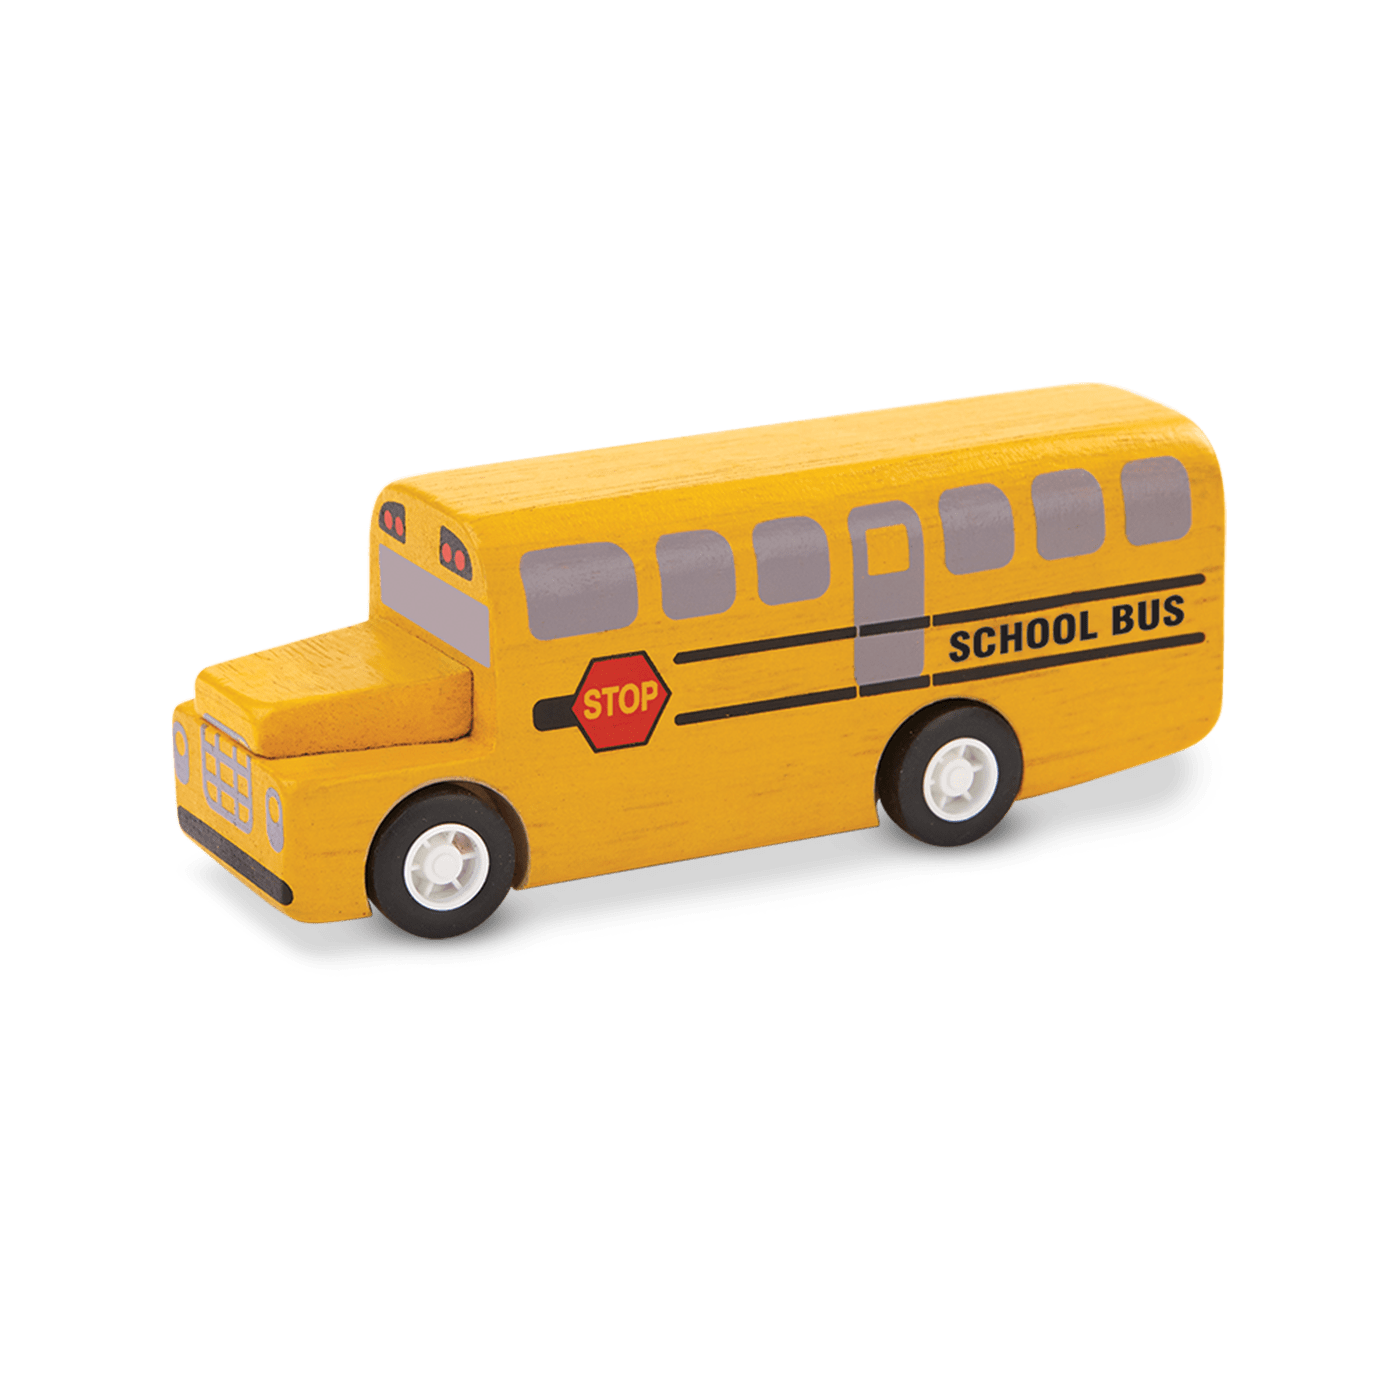 6049_PlanToys_SCHOOL_BUS_Pretend_Play_Imagination_Creative_Language_and_Communications_Social_Coordination_Fine_Motor_3yrs_Wooden_toys_Education_toys_Safety_Toys_Non-toxic_0.png